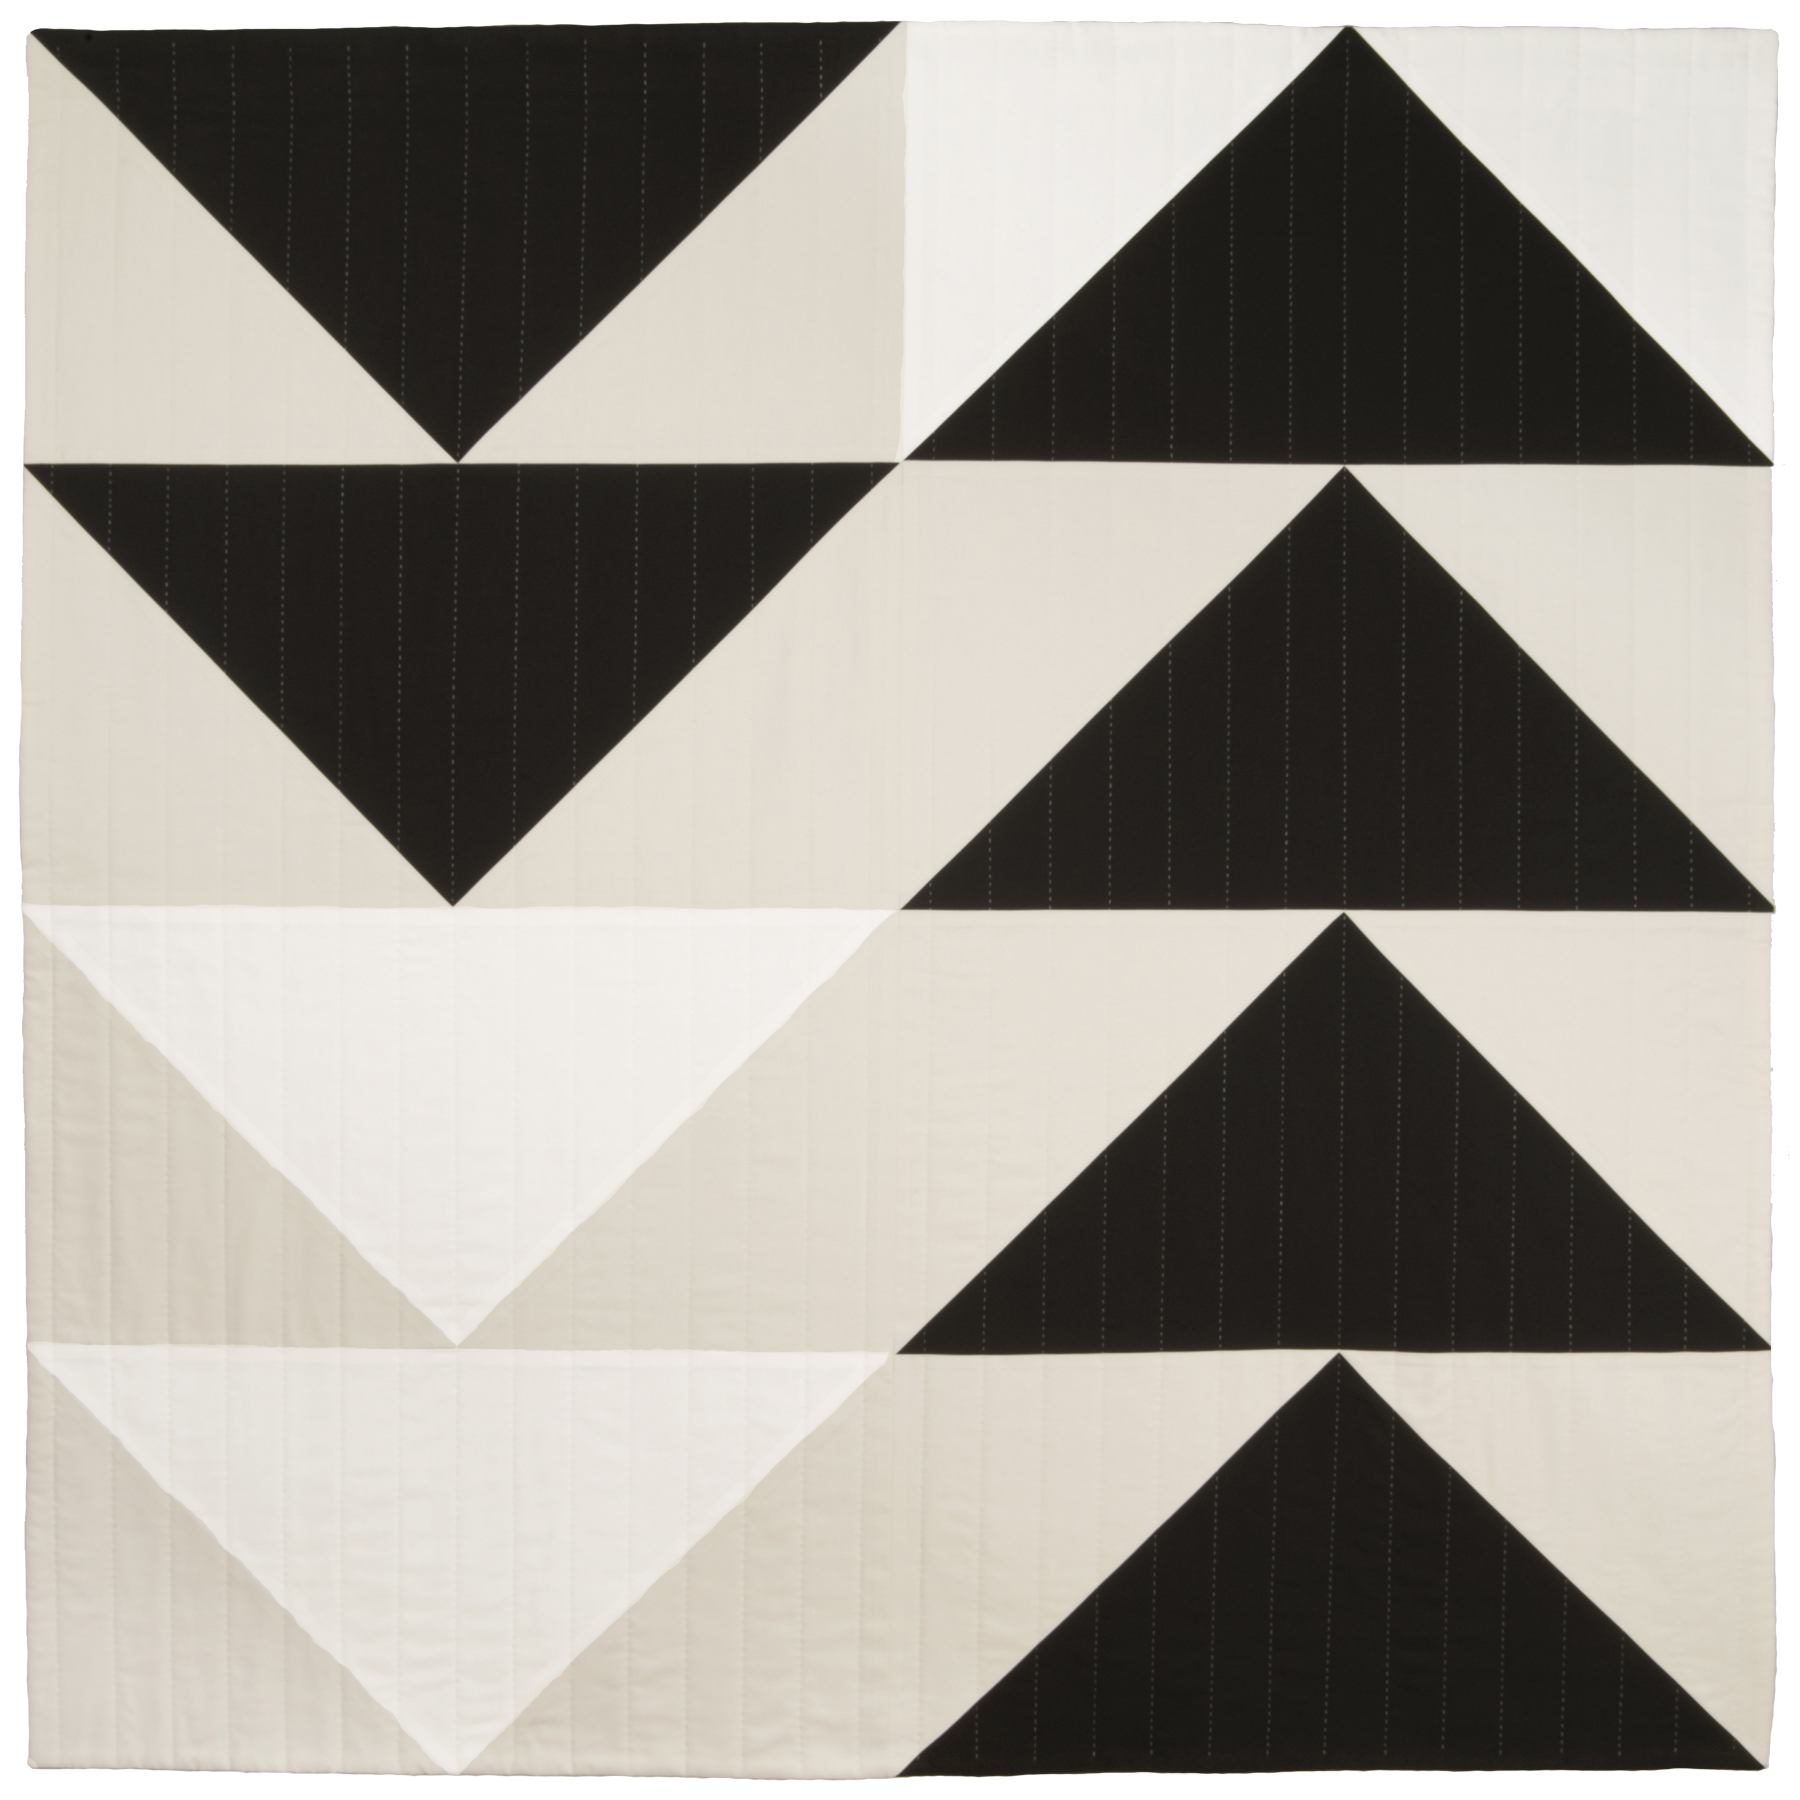 quilt by Lindsay Stead.jpg